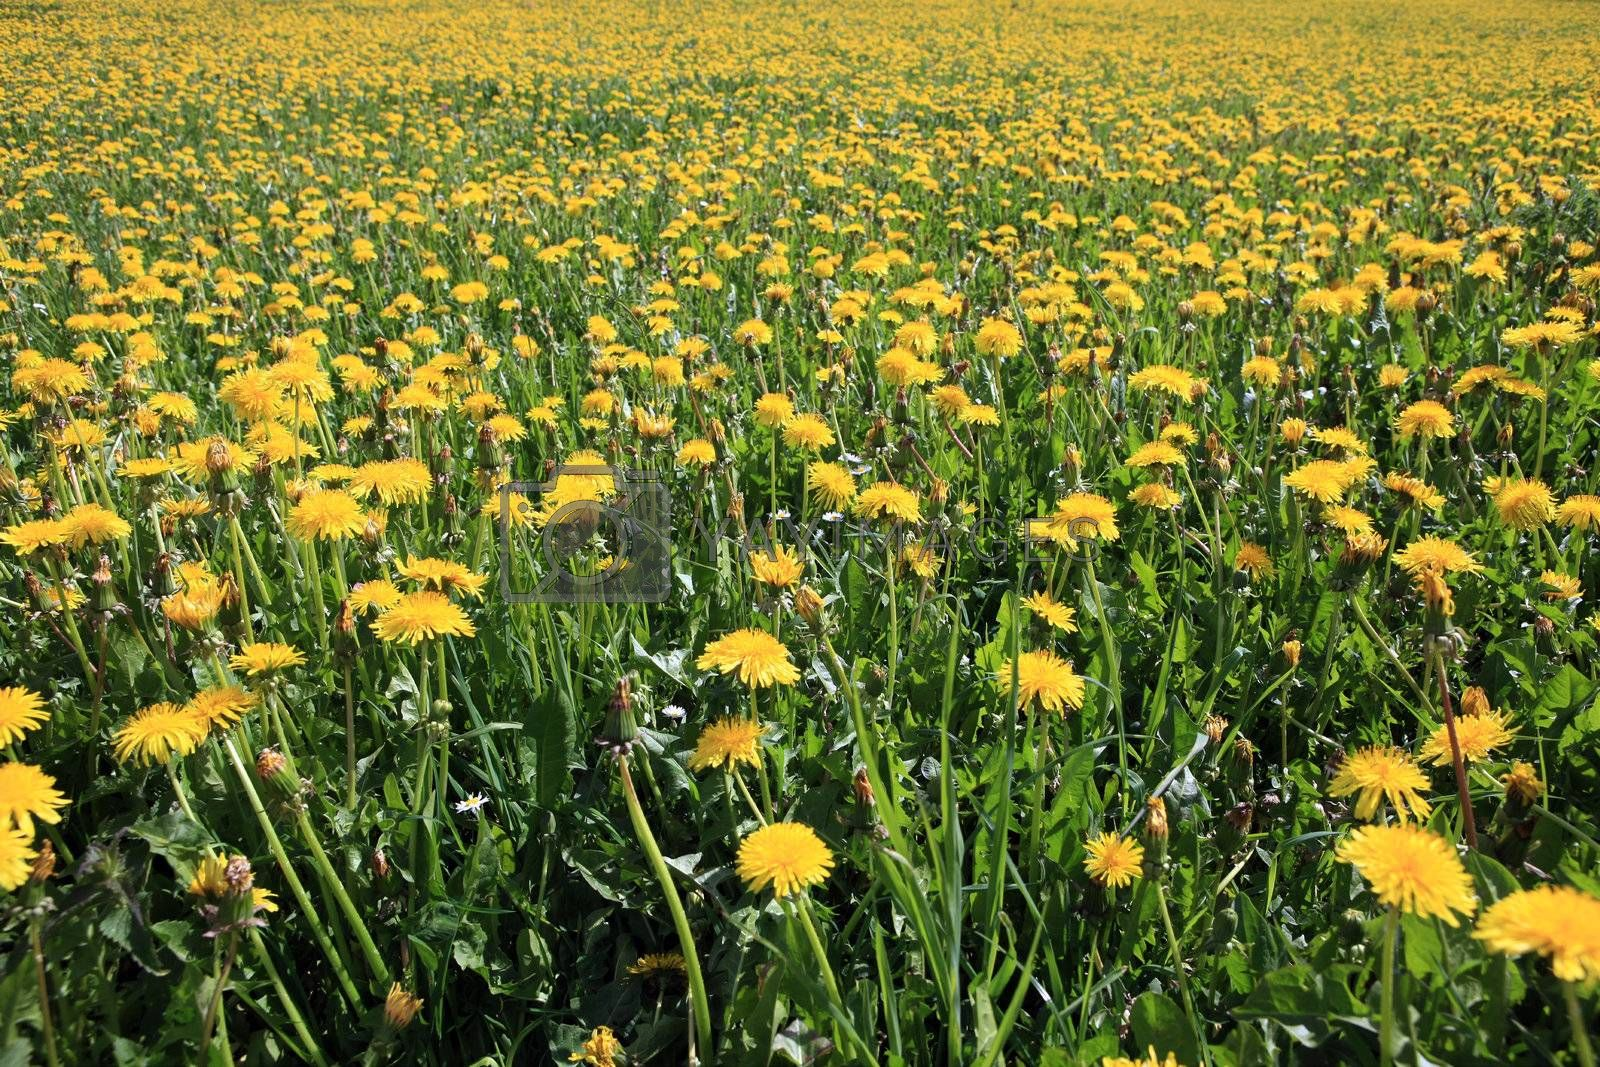 Royalty free image of Dandelion Field by monner